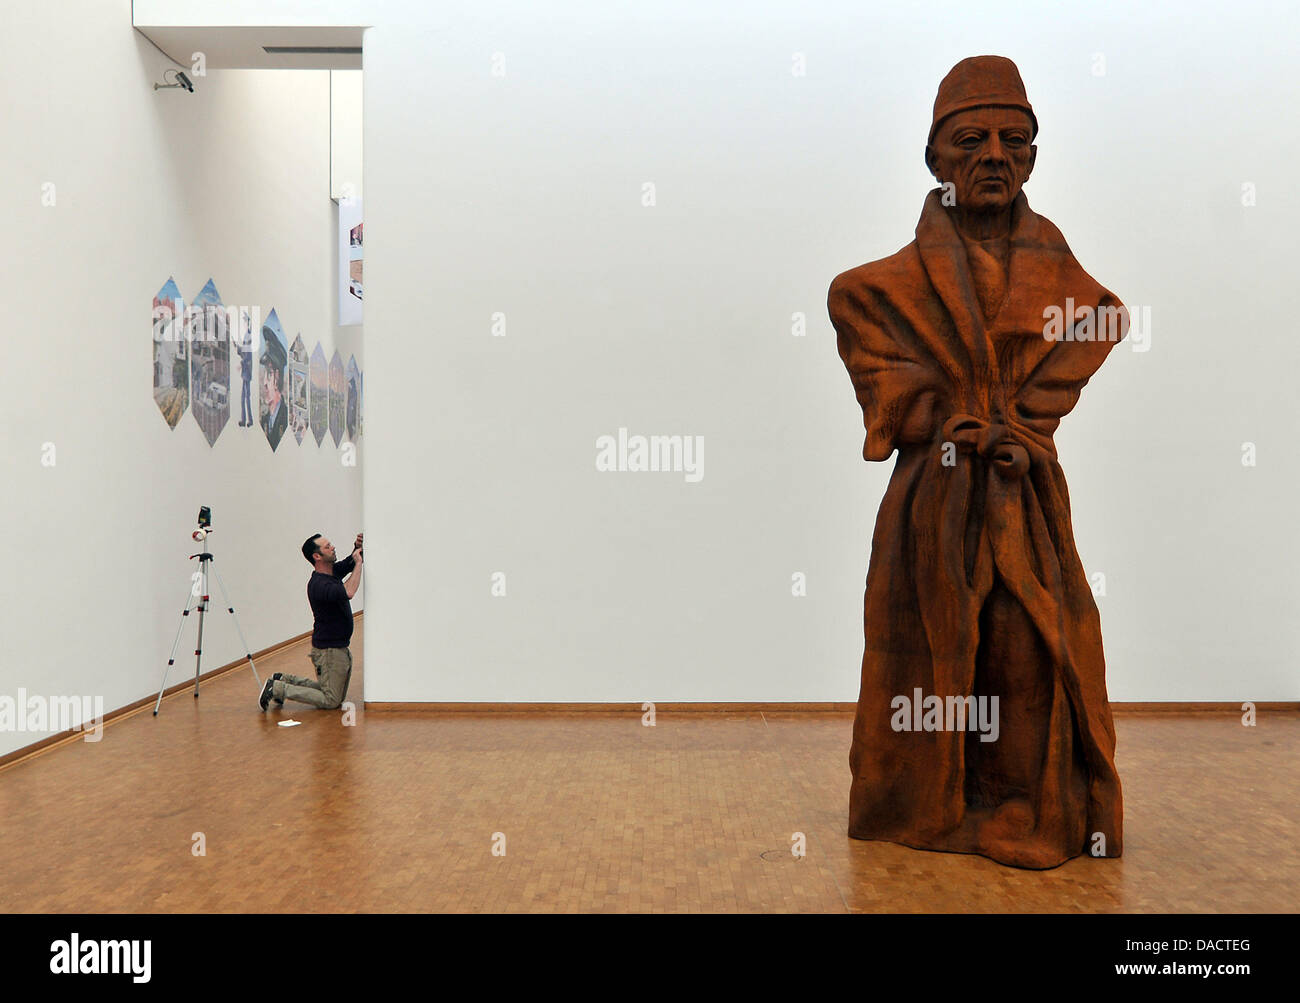 The sculpture 'The State' (Vater Staat) of Thomas Schuette is presented at the exhibition 'In the eyes - Stock Image